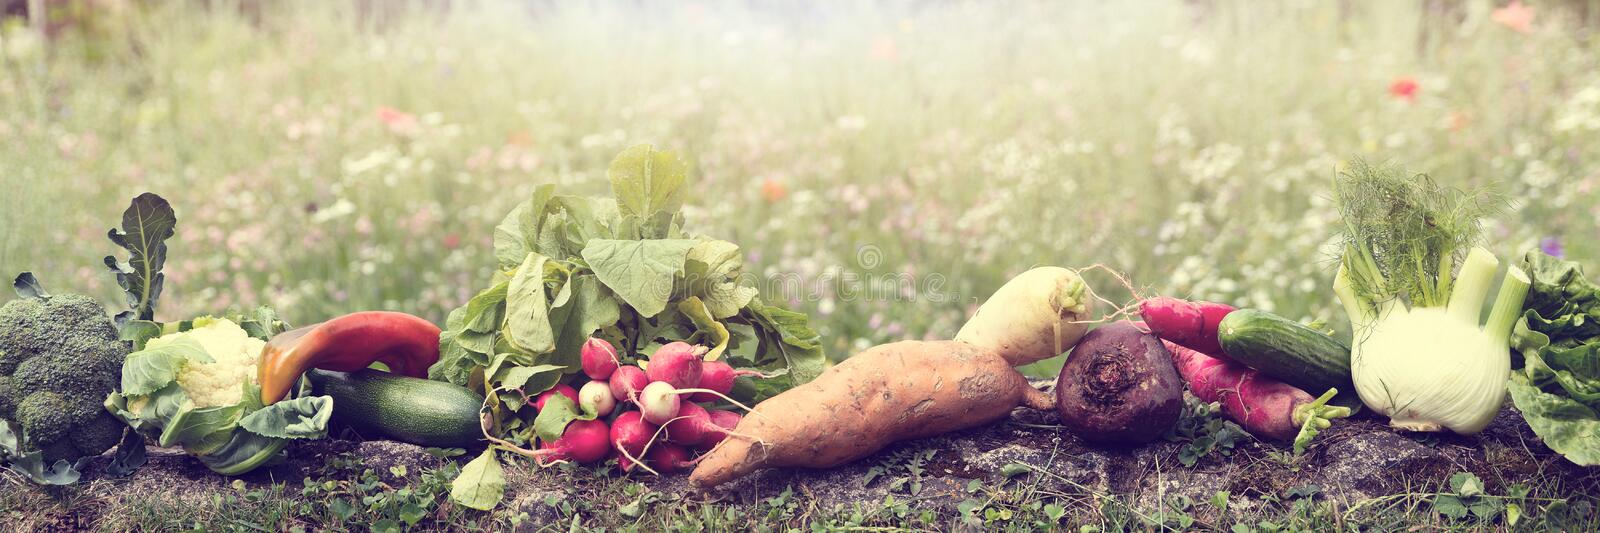 Panorama with lot of various organic vegetables is lying in a fl royalty free stock image